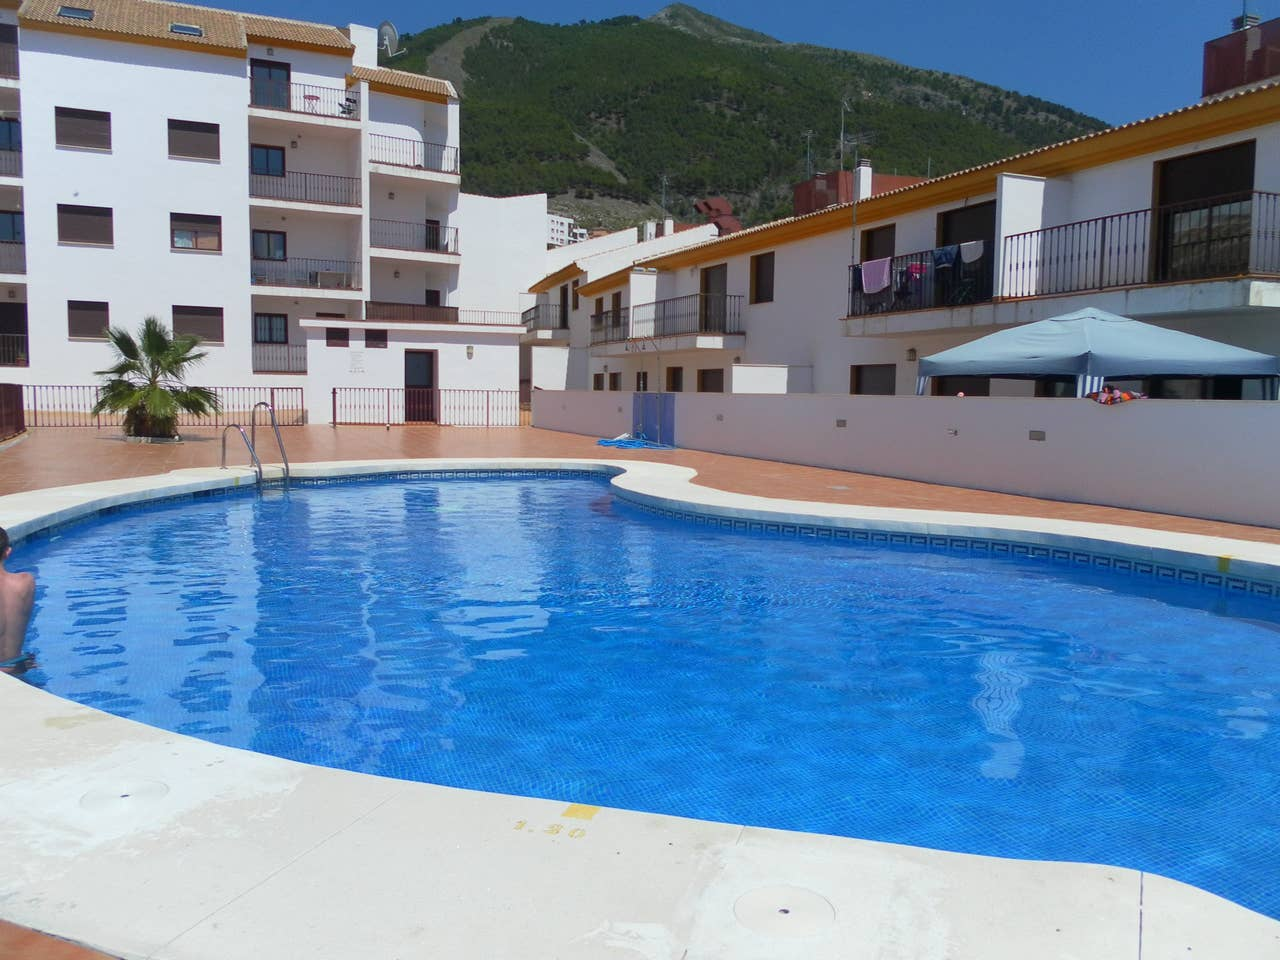 1 BEDROOM APARTMENT – FOR HOLIDAY LETS – ALCAUCIN